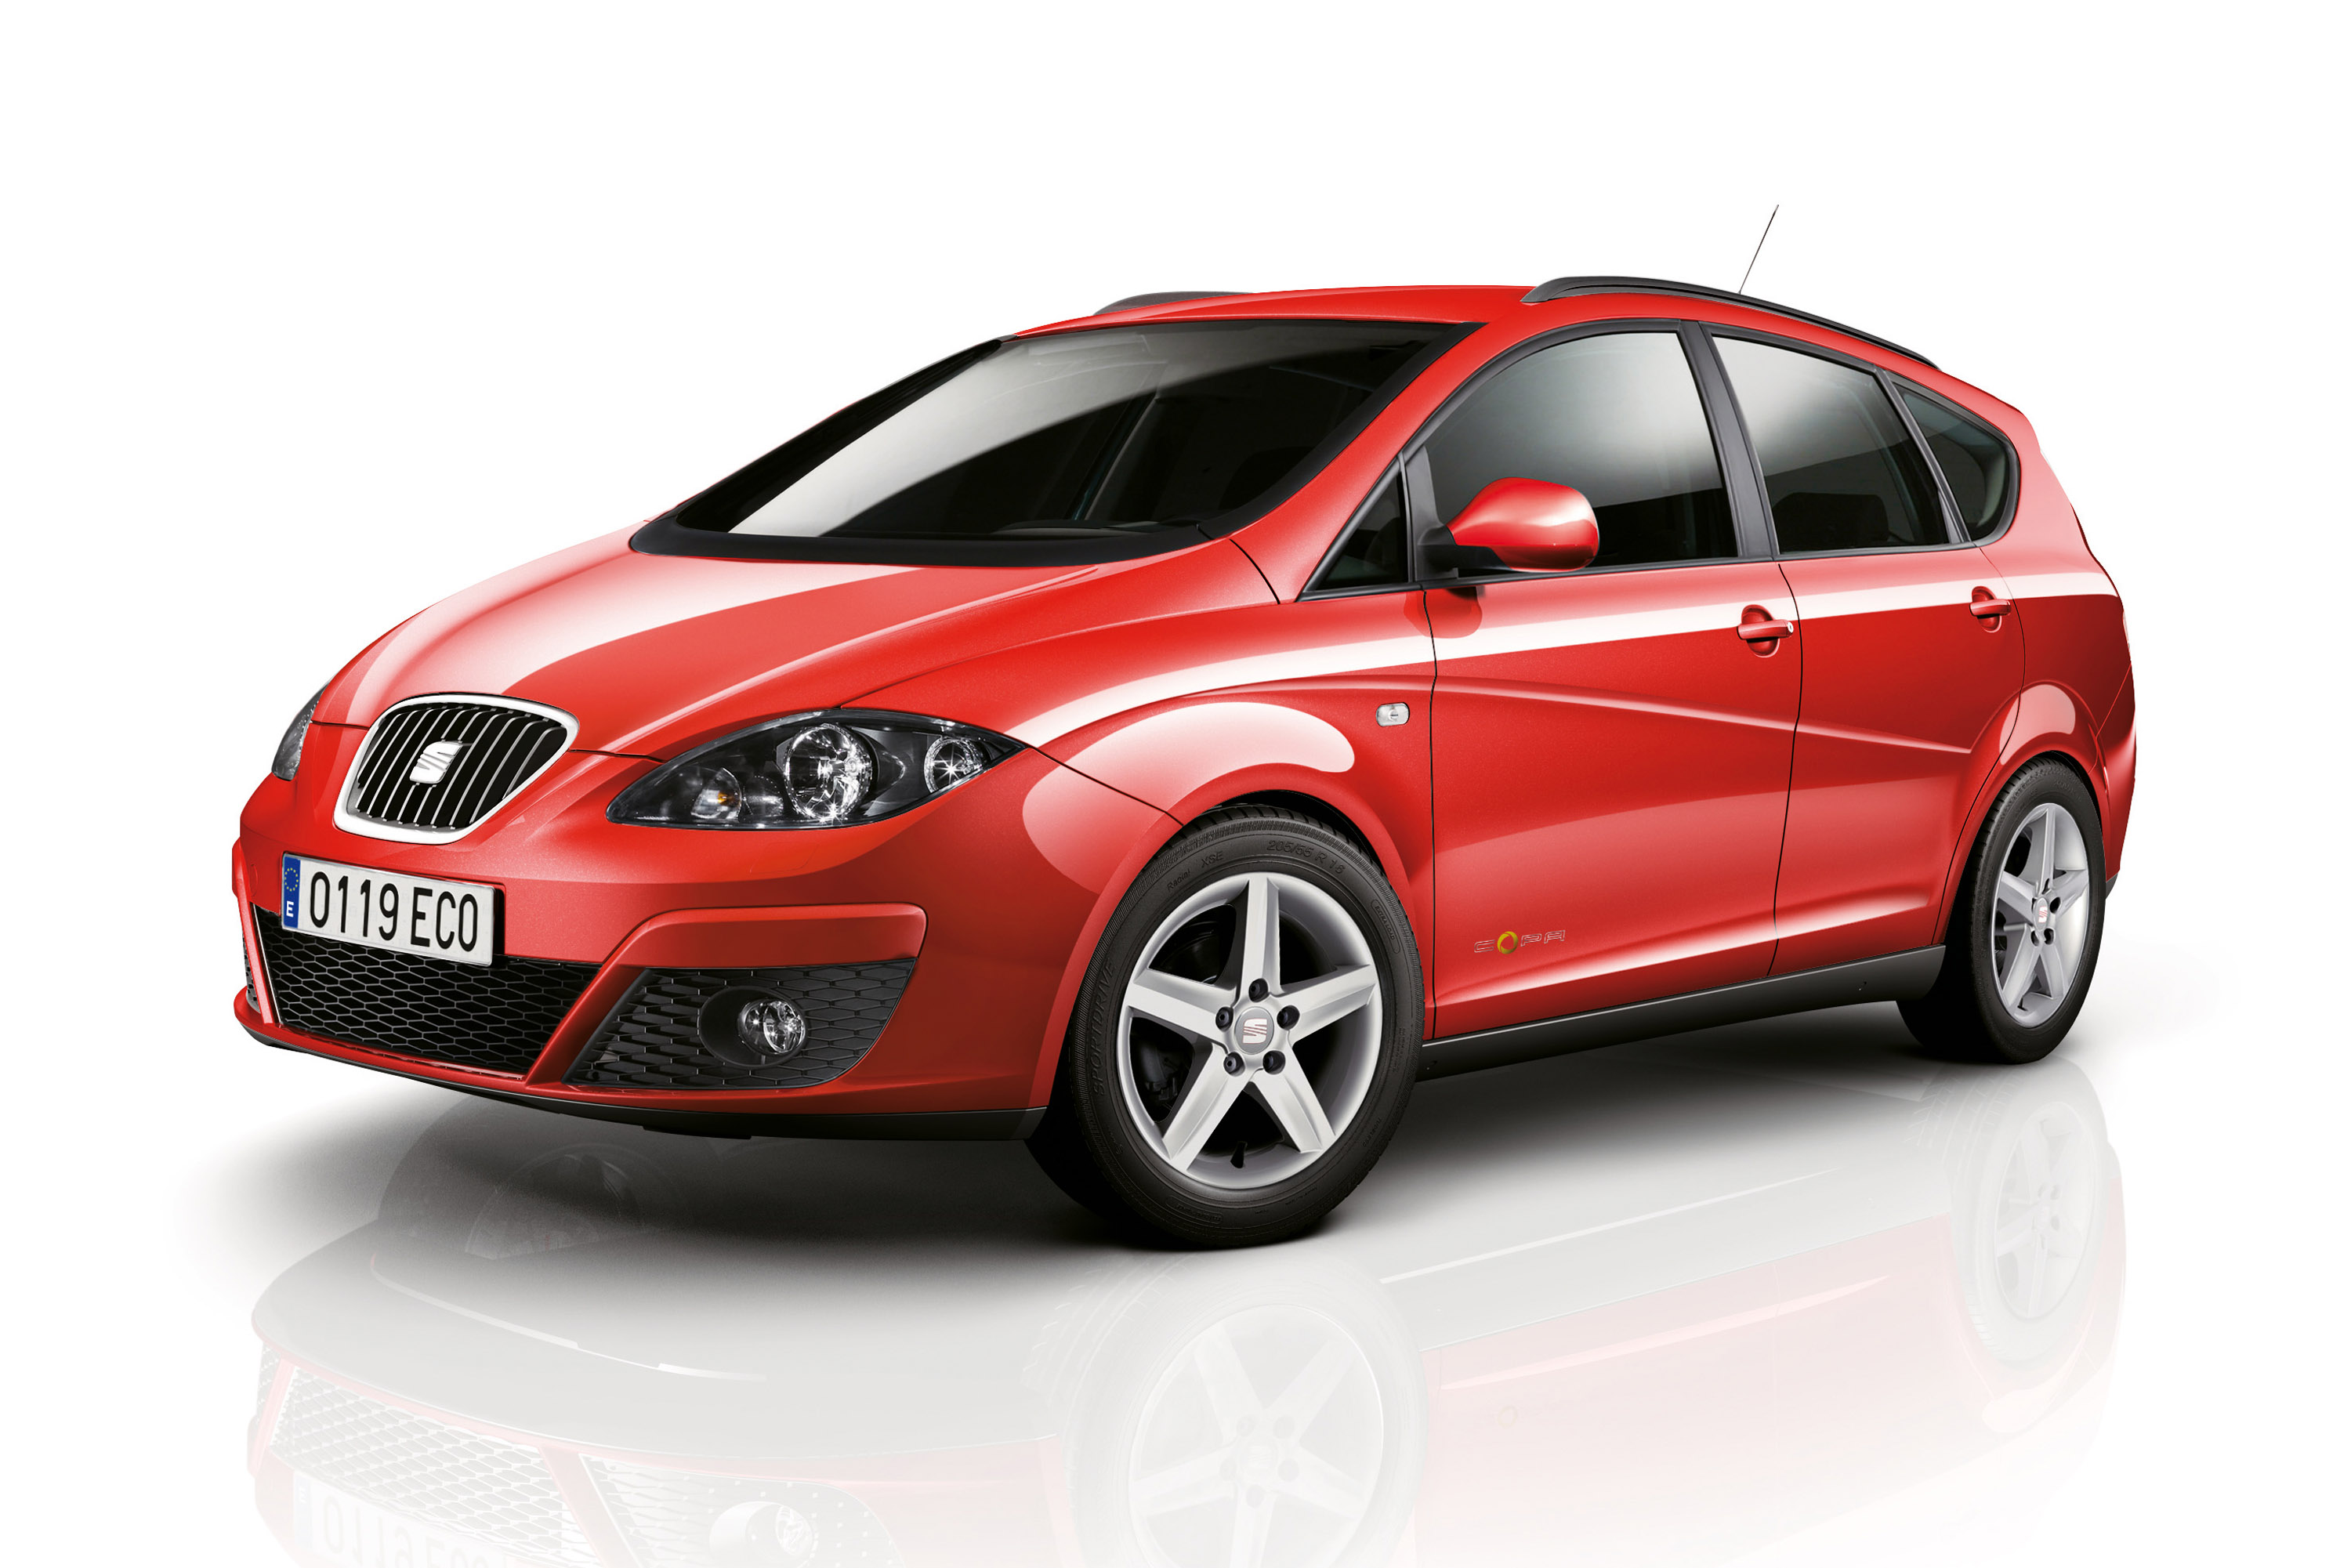 2013 Seat Altea Copa Edition Uk Price 163 16 425